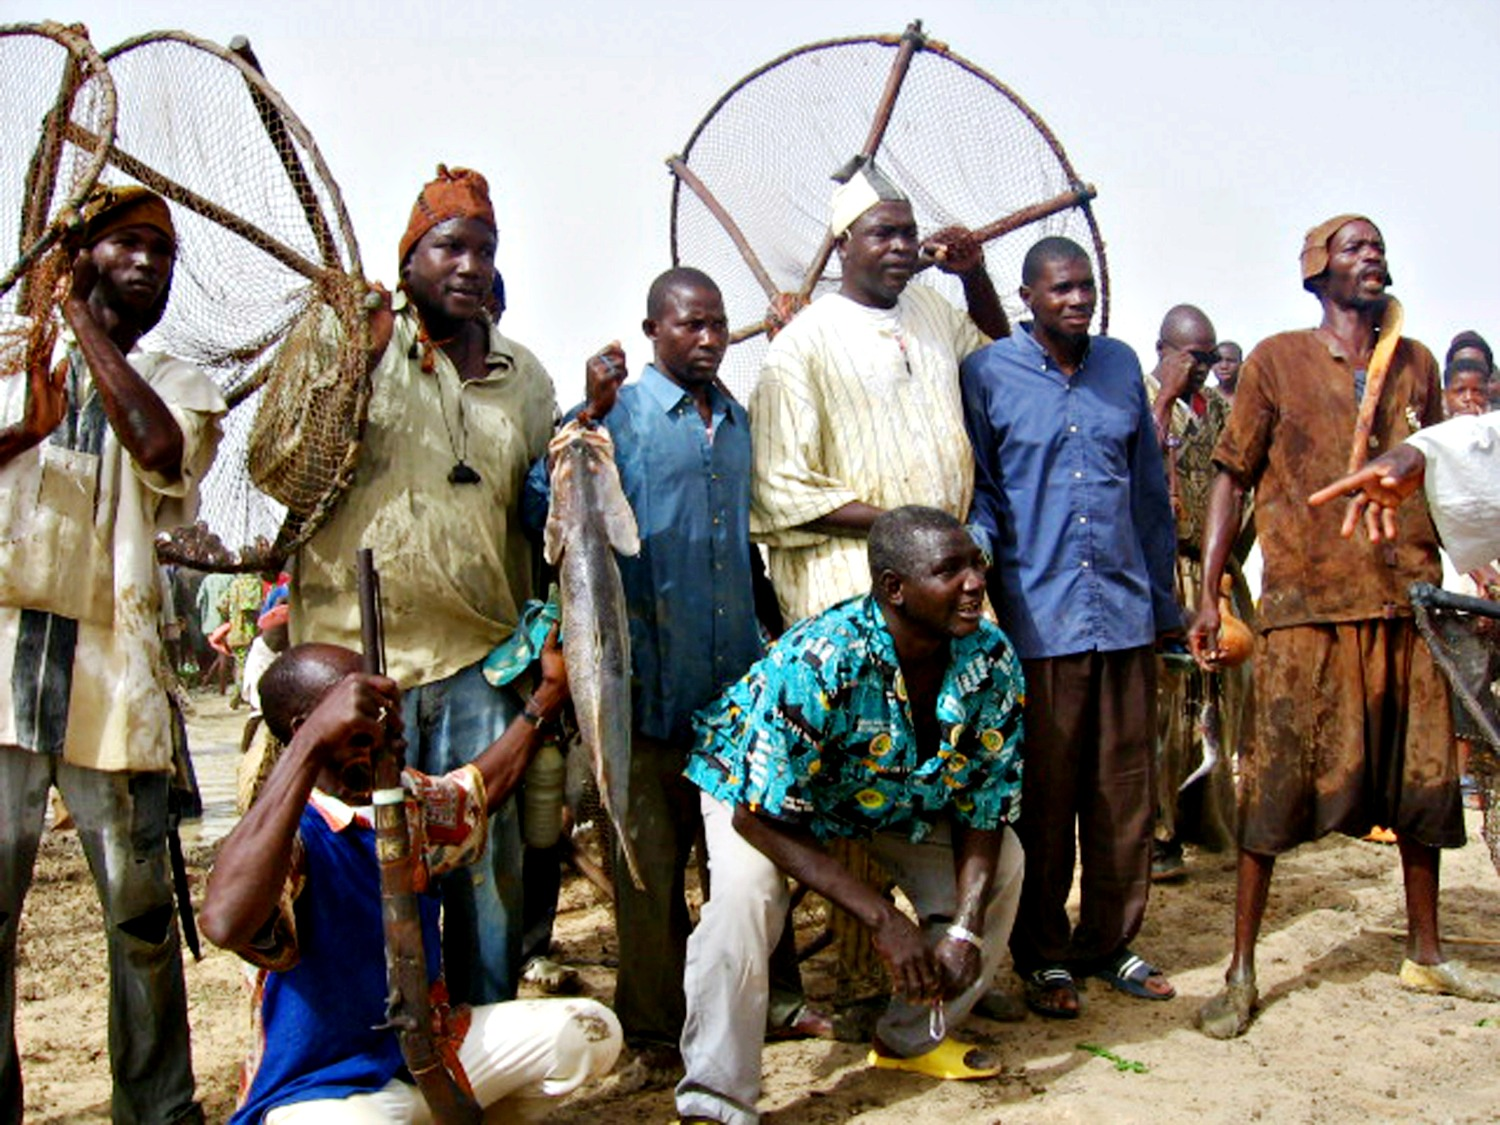 'Sanké mon, collective fishing rite of the Sanké': ©DNPC, 2007, with the permission of UNESCO